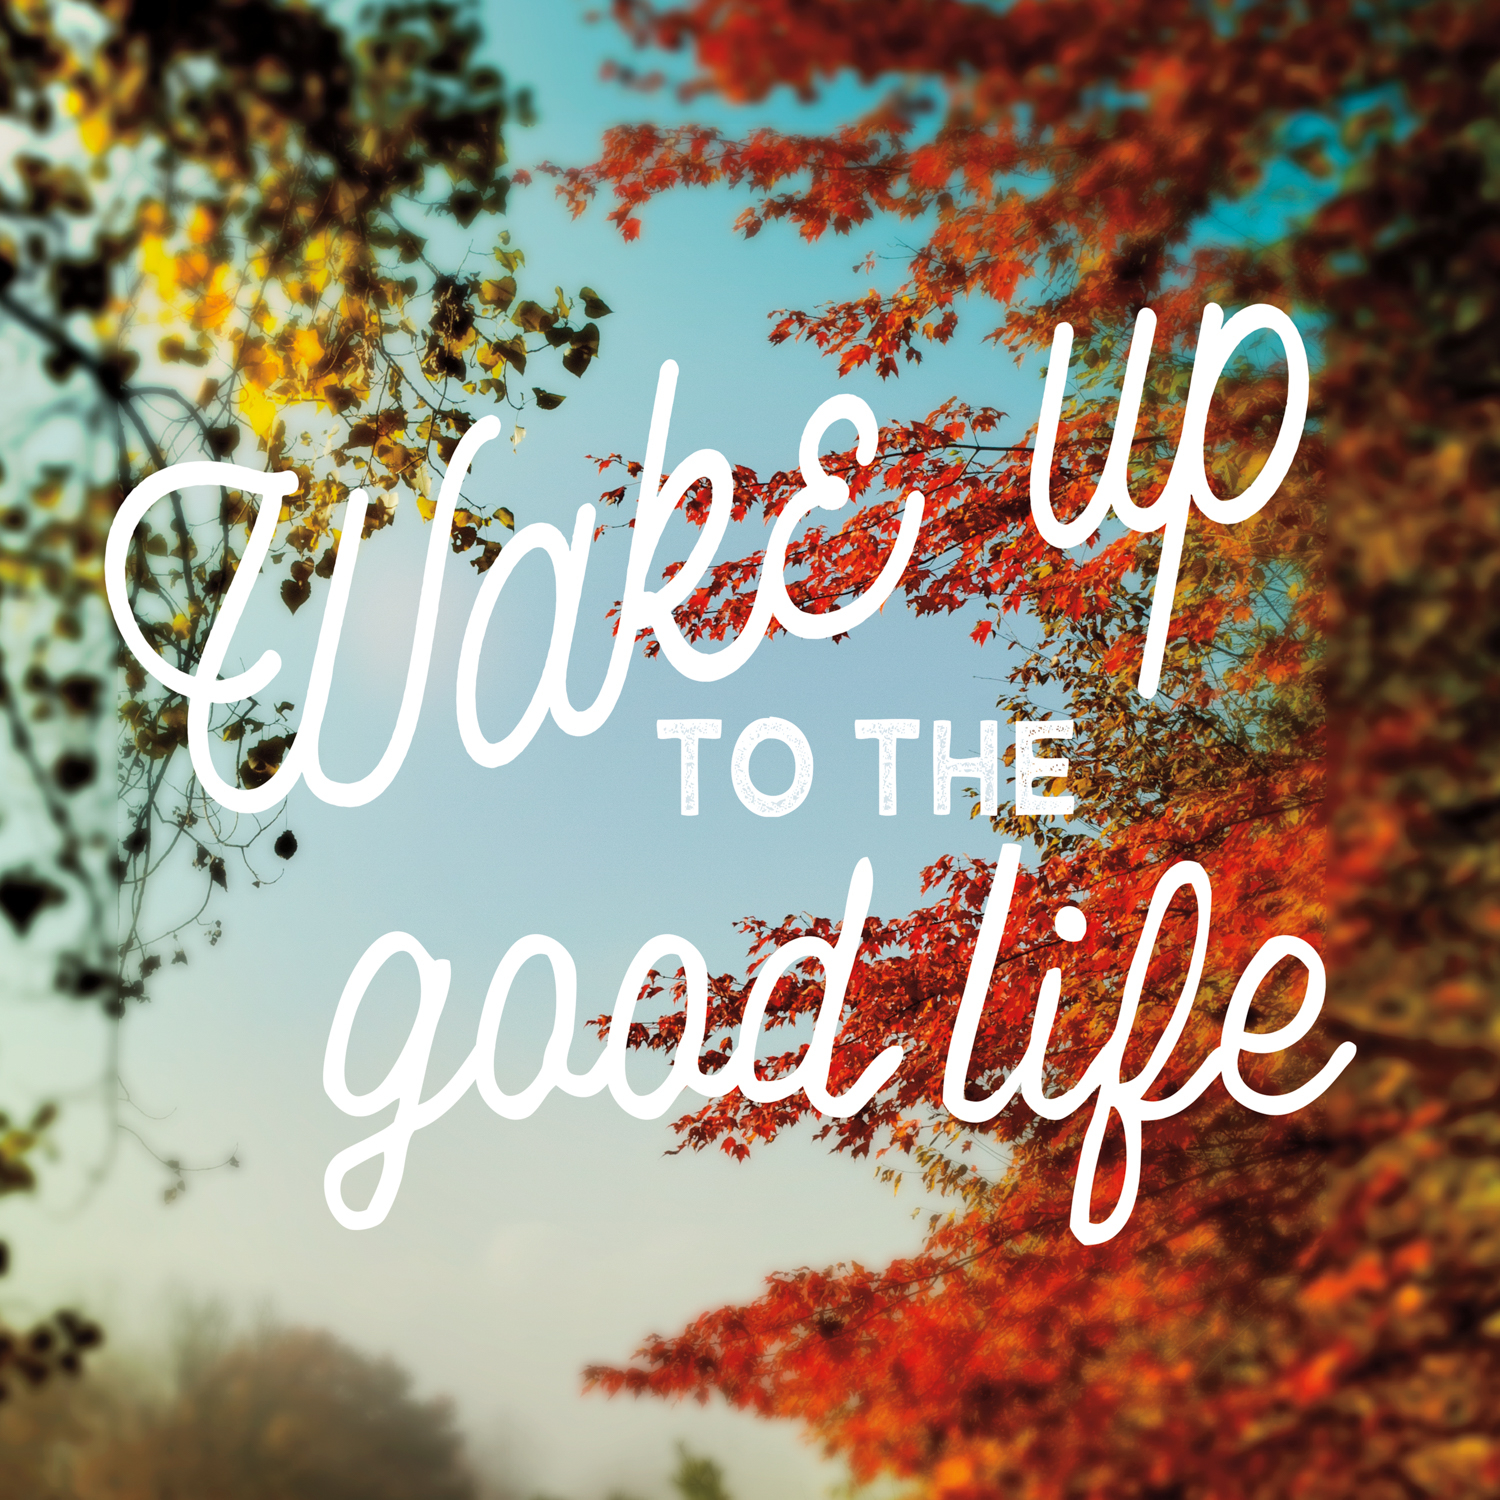 Typography with positive phrase over image of fall foliage